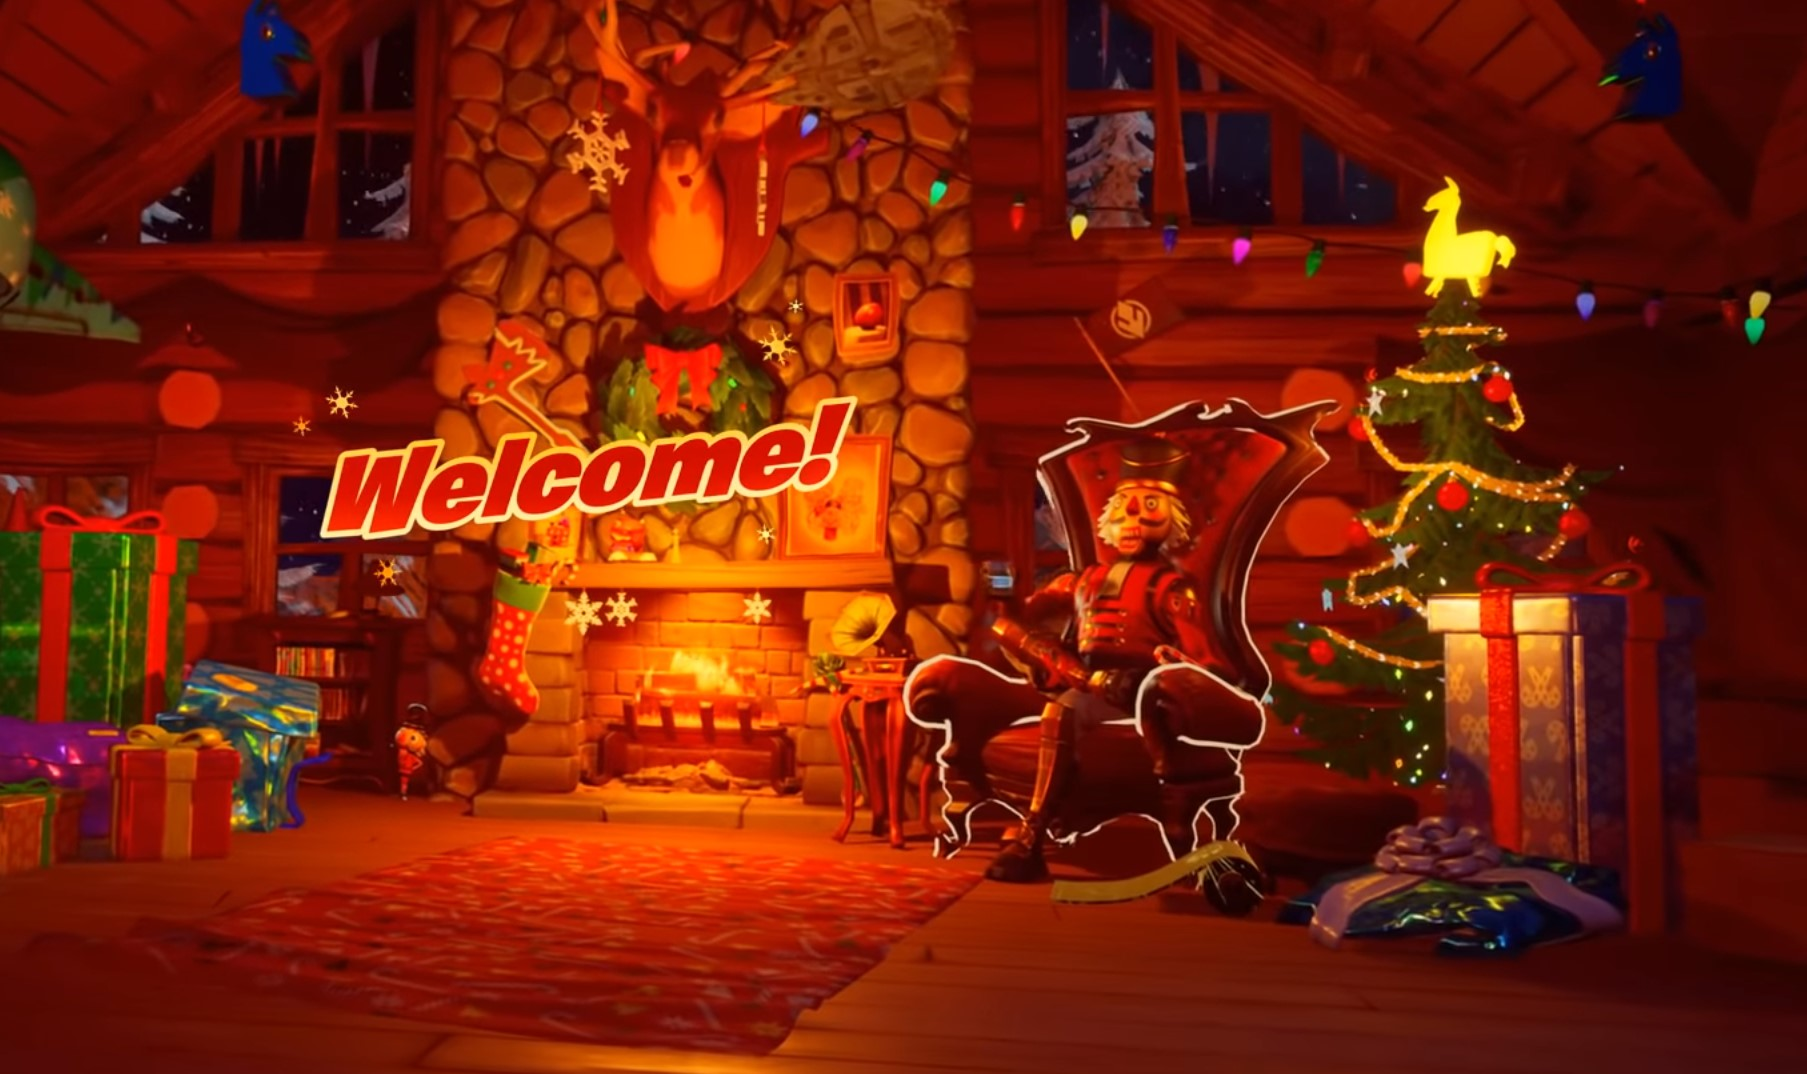 How to Get The Christmas Tree Skin in Fortnite